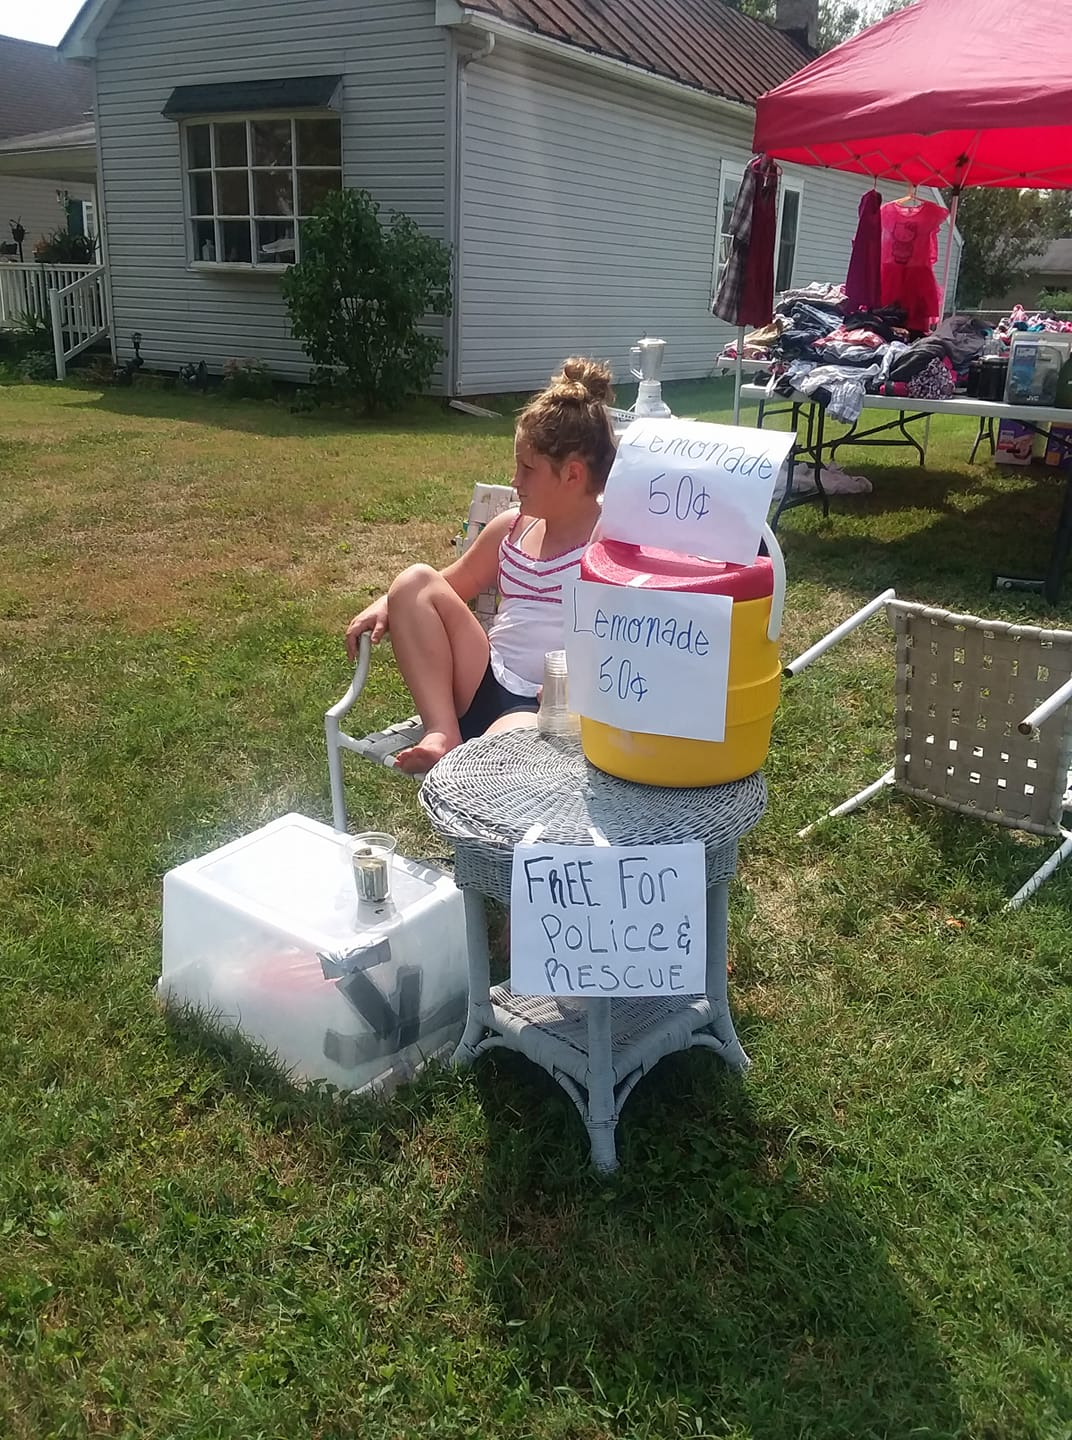 S Offer Free Lemonade To Firefighters And Police At Yard